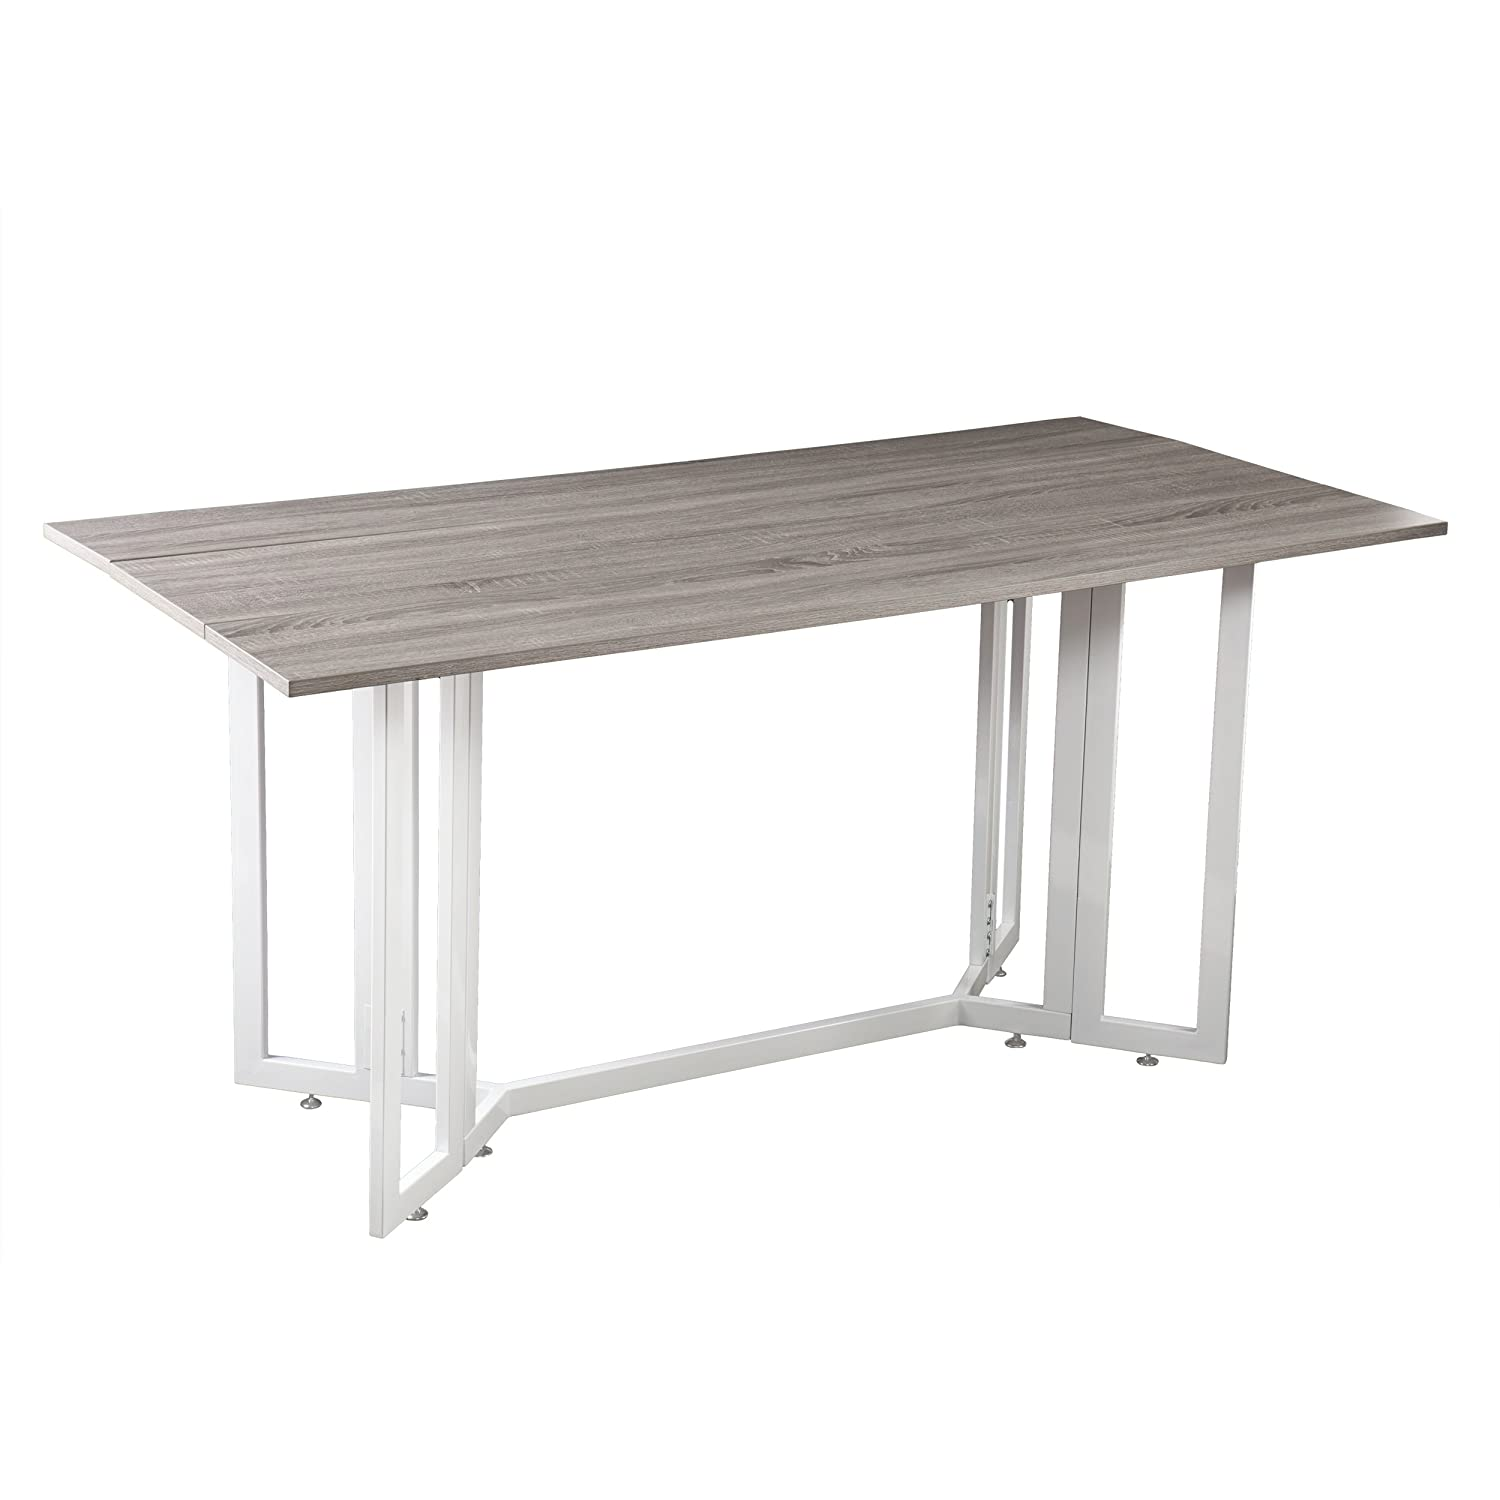 Black Drop Leaf Kitchen Table Amazon holly martin driness drop leaf console dining table amazon holly martin driness drop leaf console dining table weathered gray finish with white metal base tables workwithnaturefo